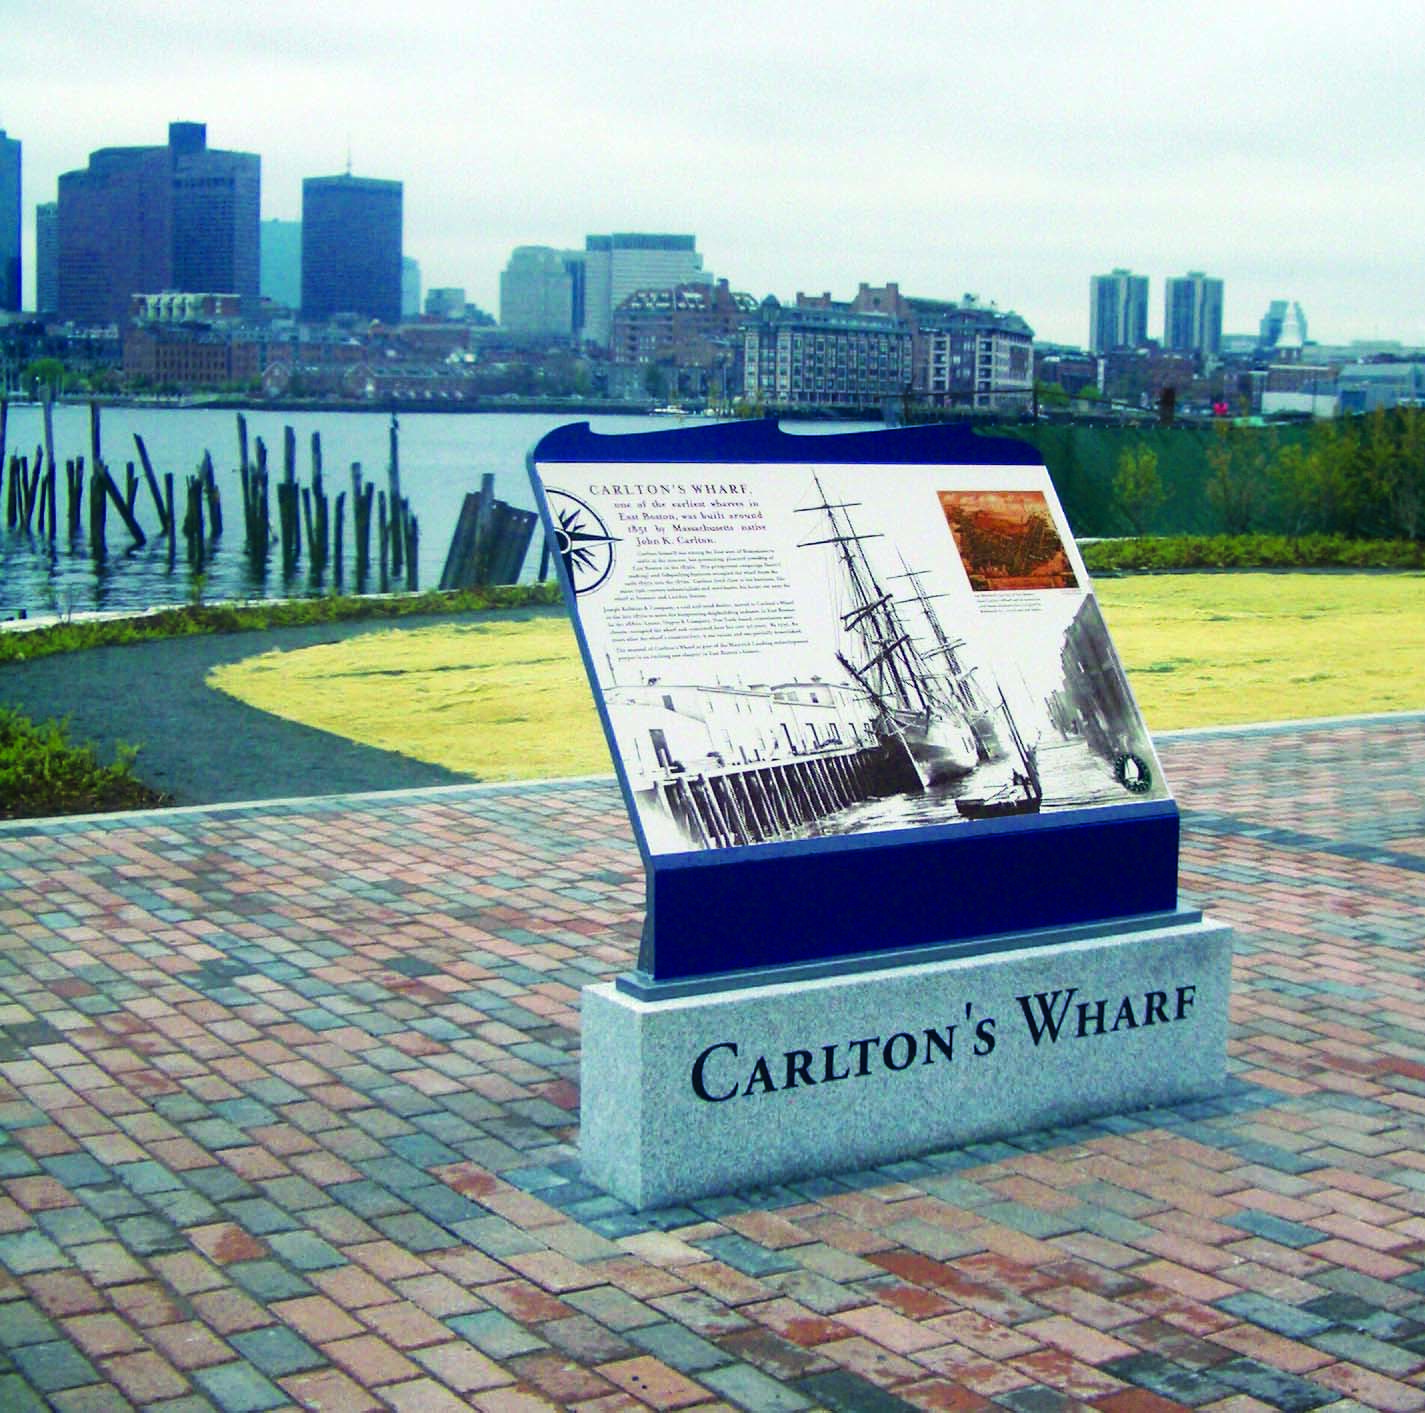 carlton's wharf sign, east boston, by Richard Perkins